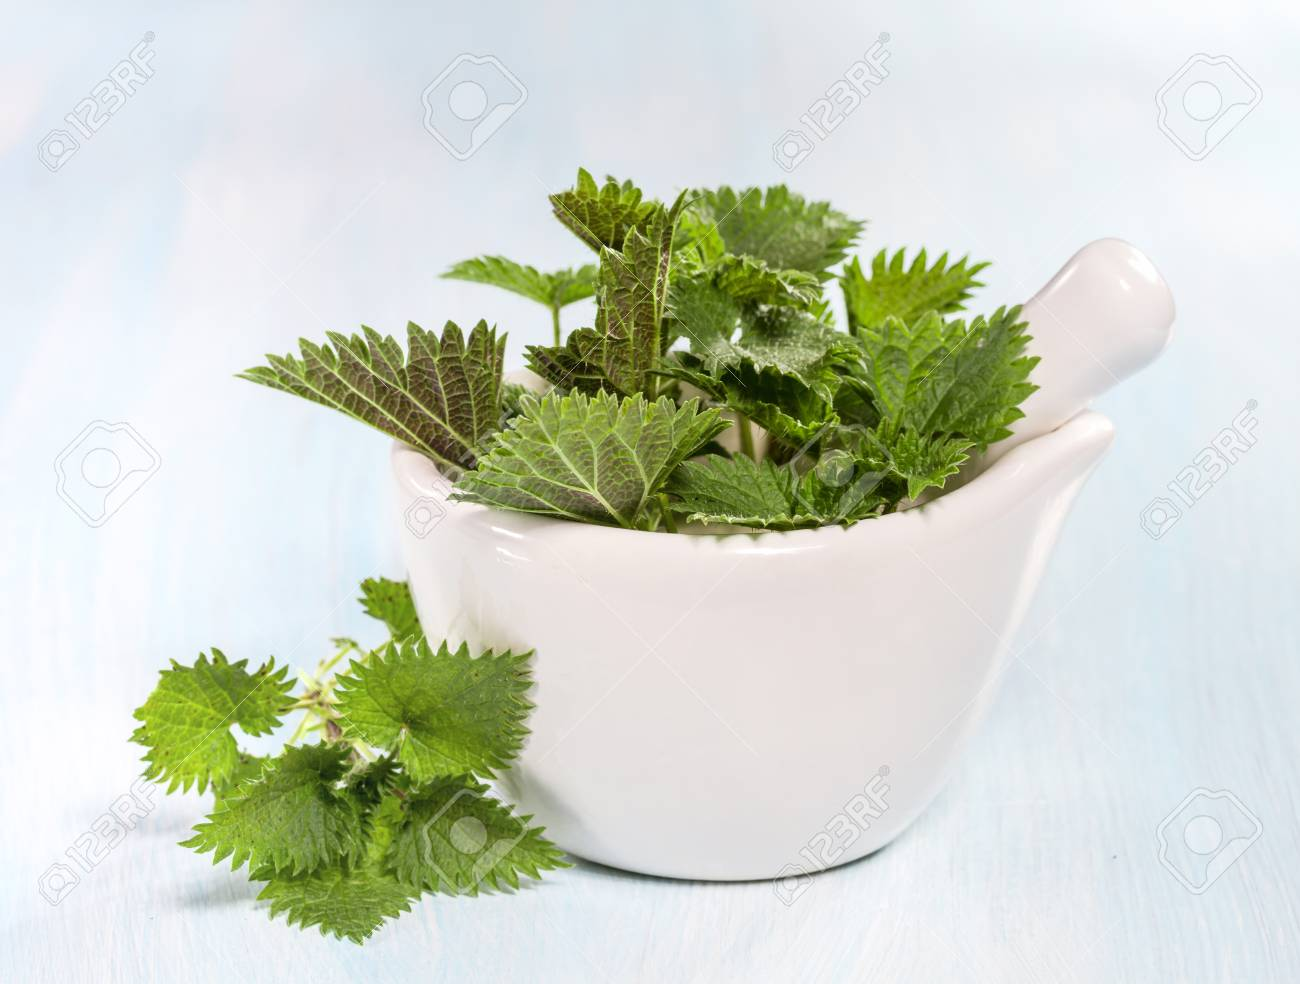 Fresh nettle leaves on a wooden table - 26620510